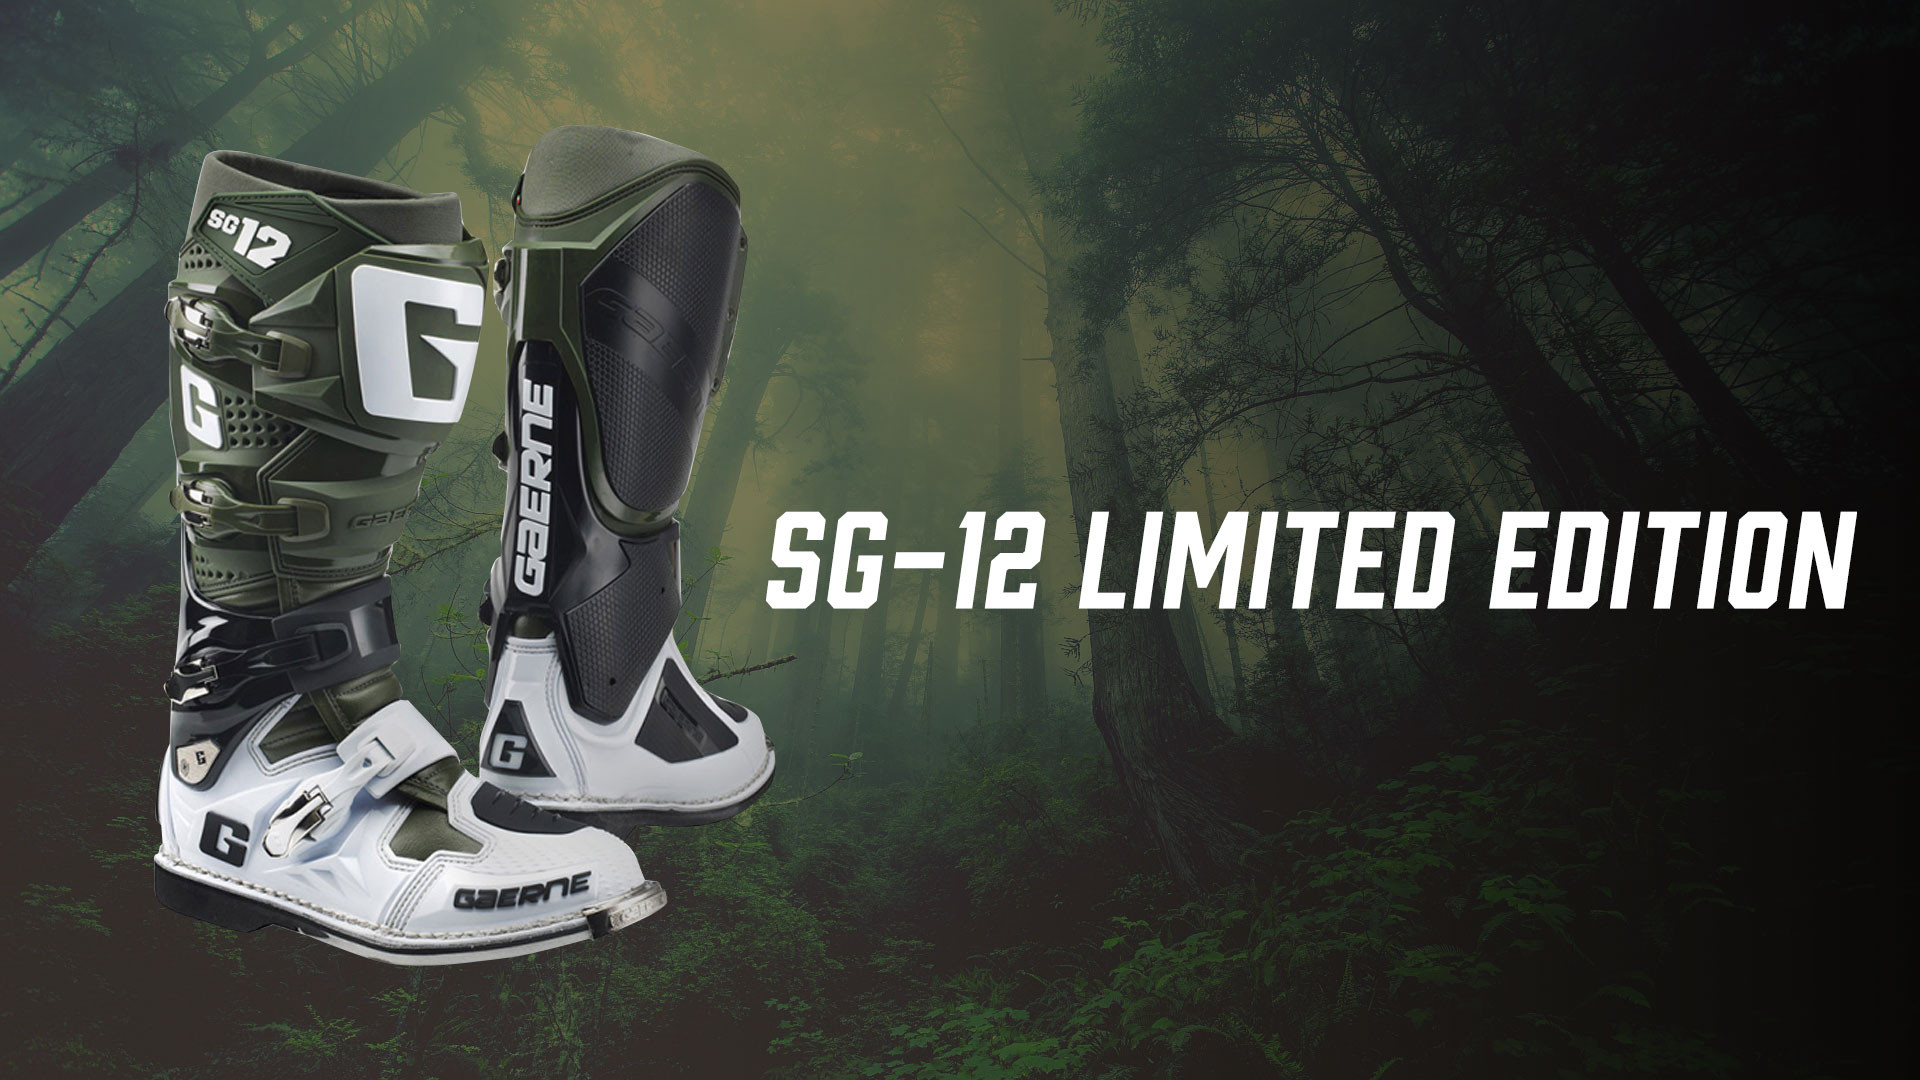 Gaerne SG 12 Limited Edition